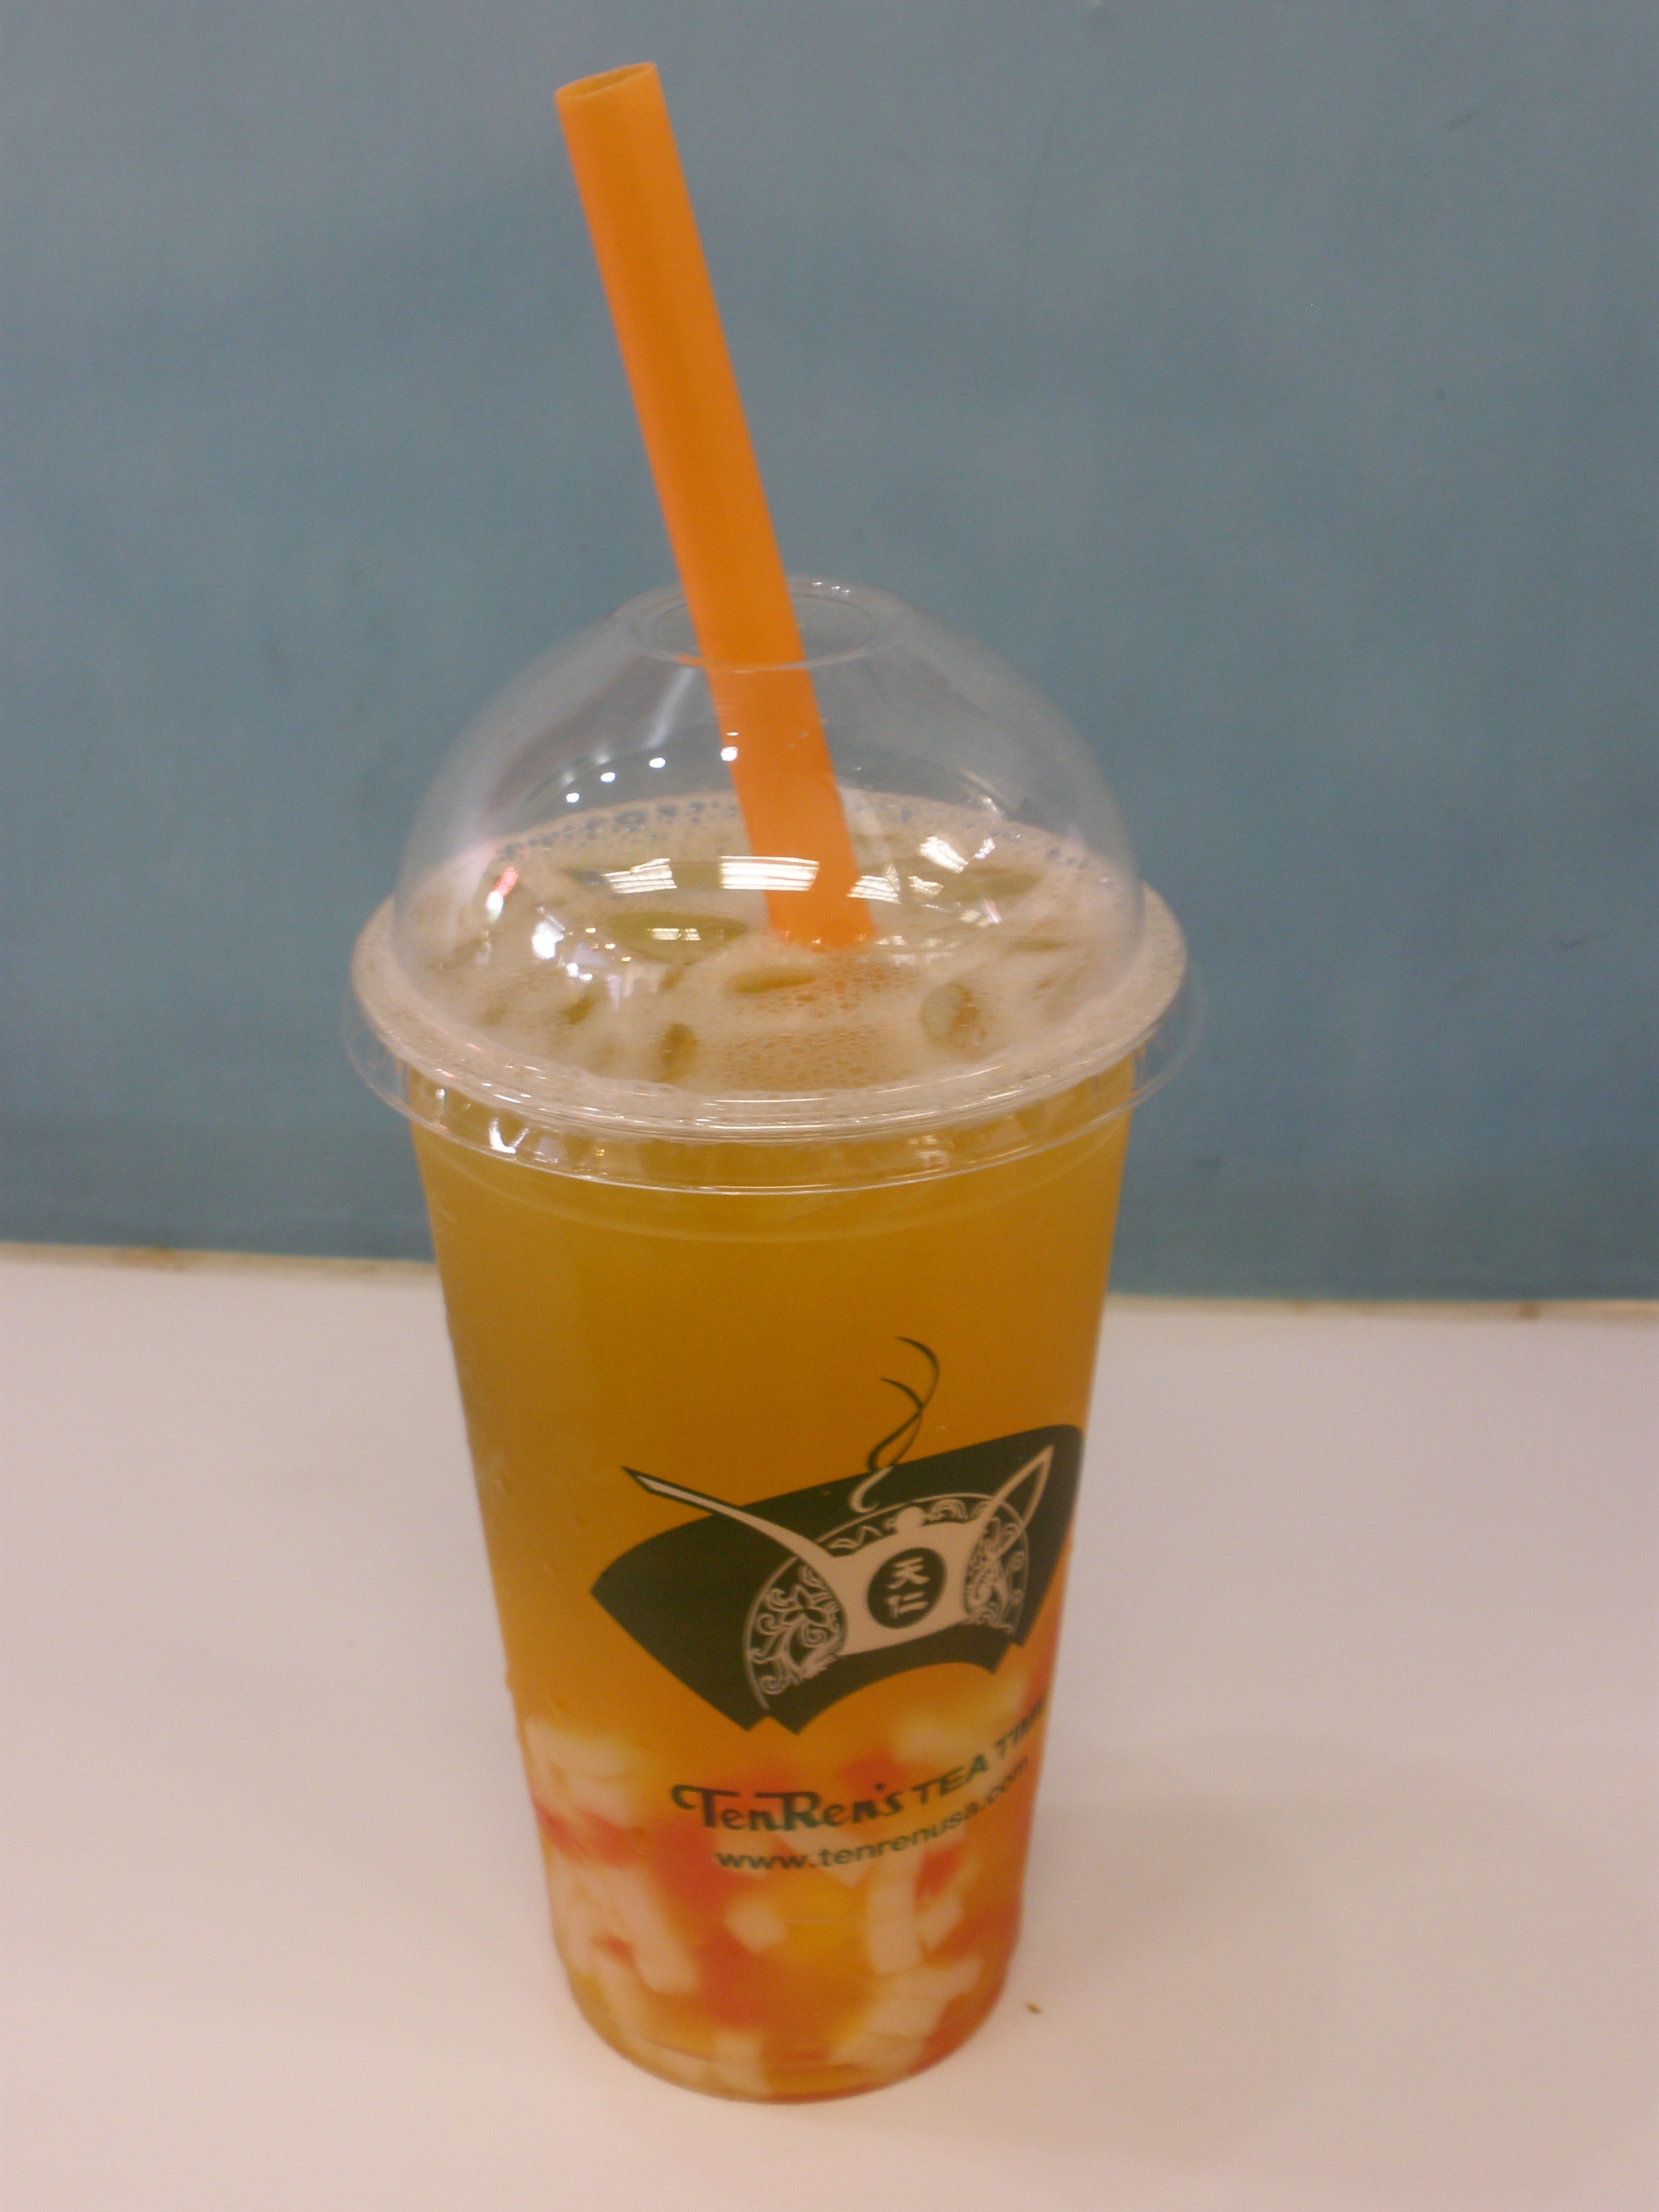 Peach Bubble Tea, or should I say Peach Jelly Tea. Yes, I do color coordinate my straw with my drink.